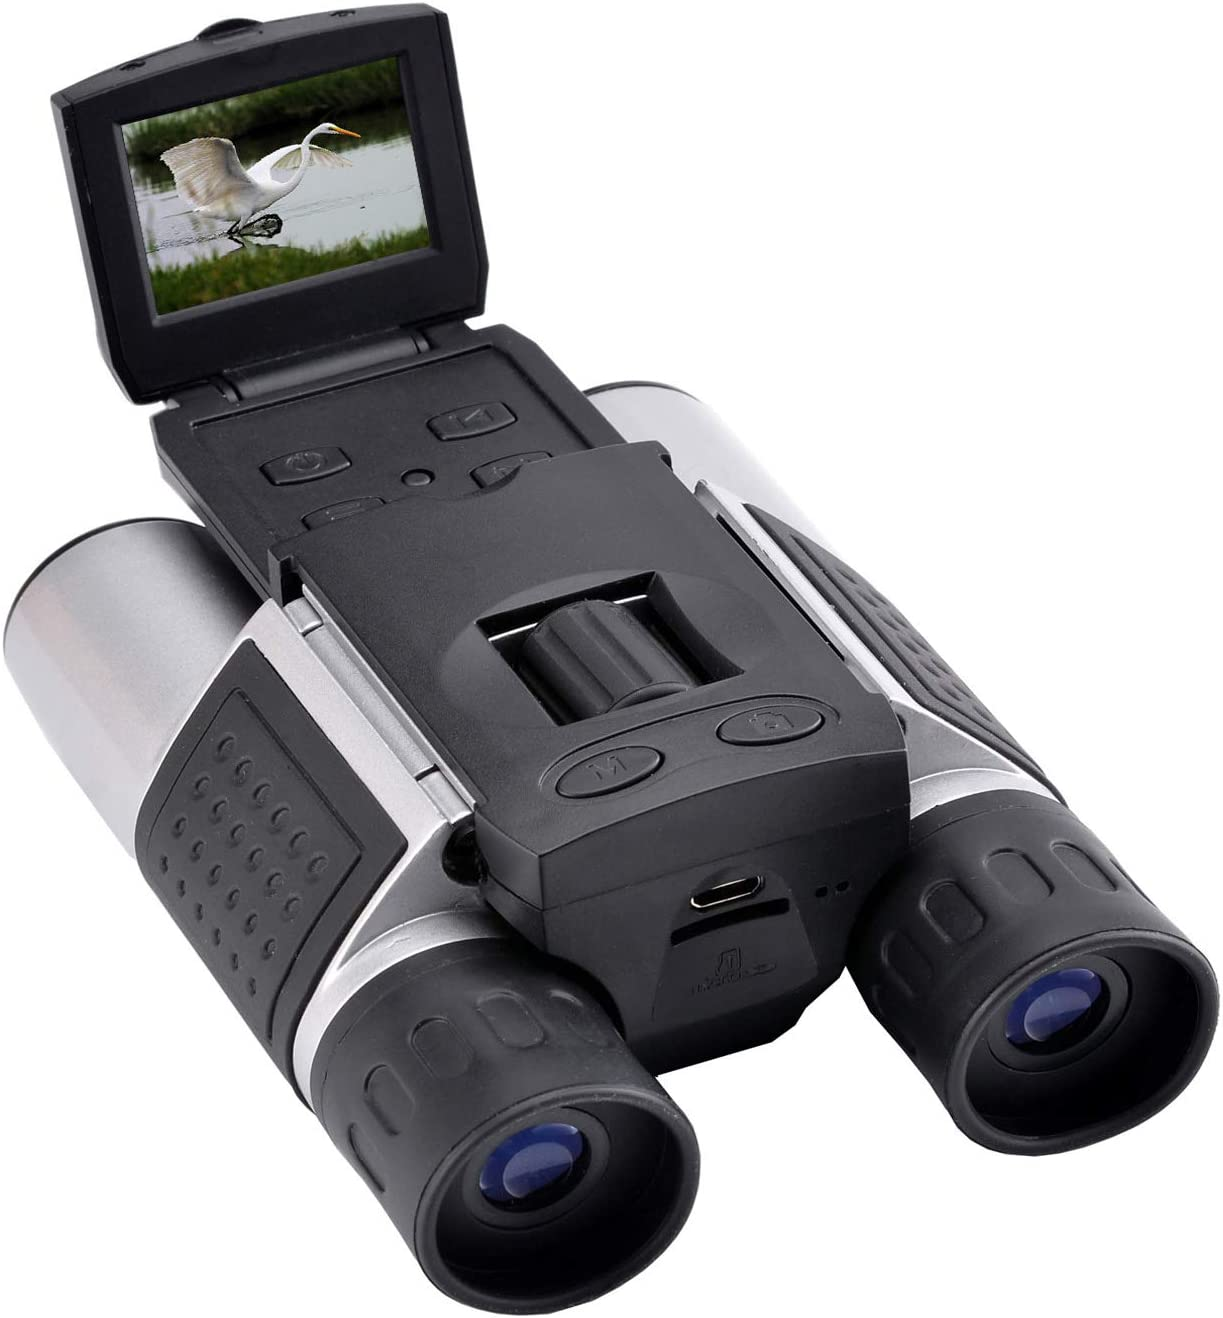 """Eoncore 1.5"""" LCD Digital Binoculars Camera 10x25 5MP Video Photo Recorder Telescope with 8GB Memory Card for Bird Watching Football Game Concert"""